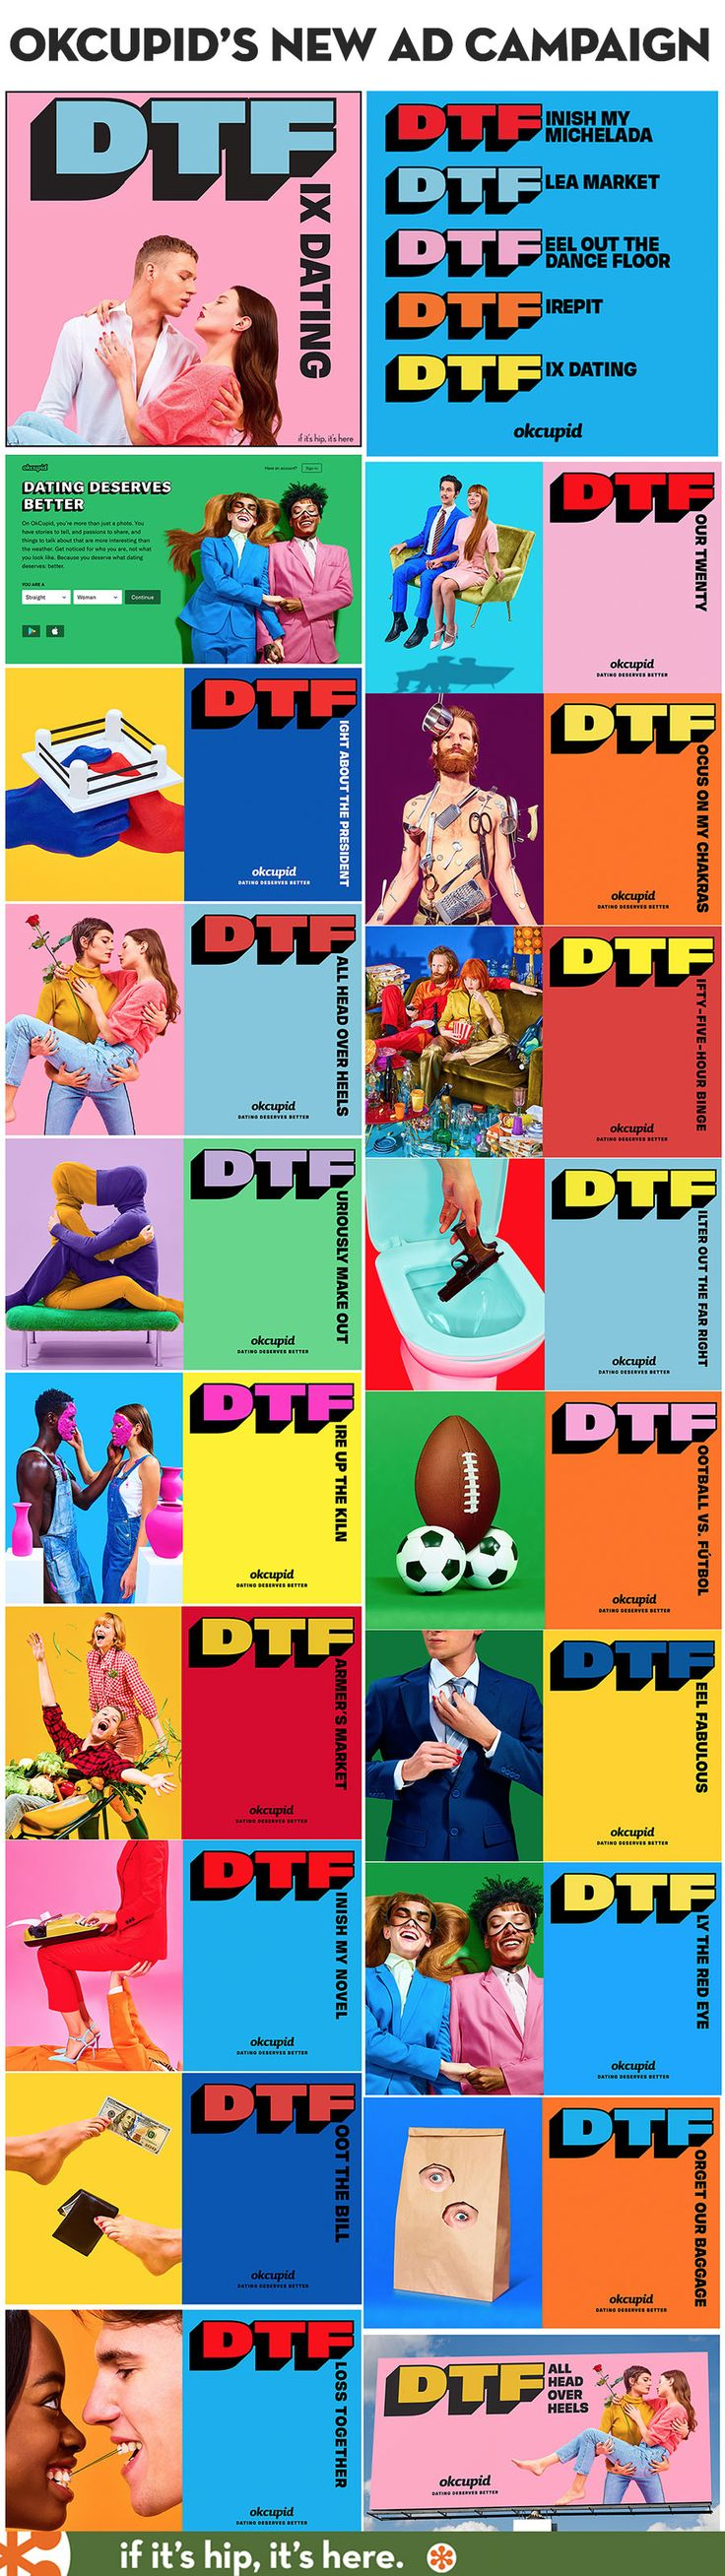 A look at the new ad campaign from Wieden+Kennedy for OKCupid. Learn all about it at http://www.ifitshipitshere.com/okcupid-dtf-campaign/